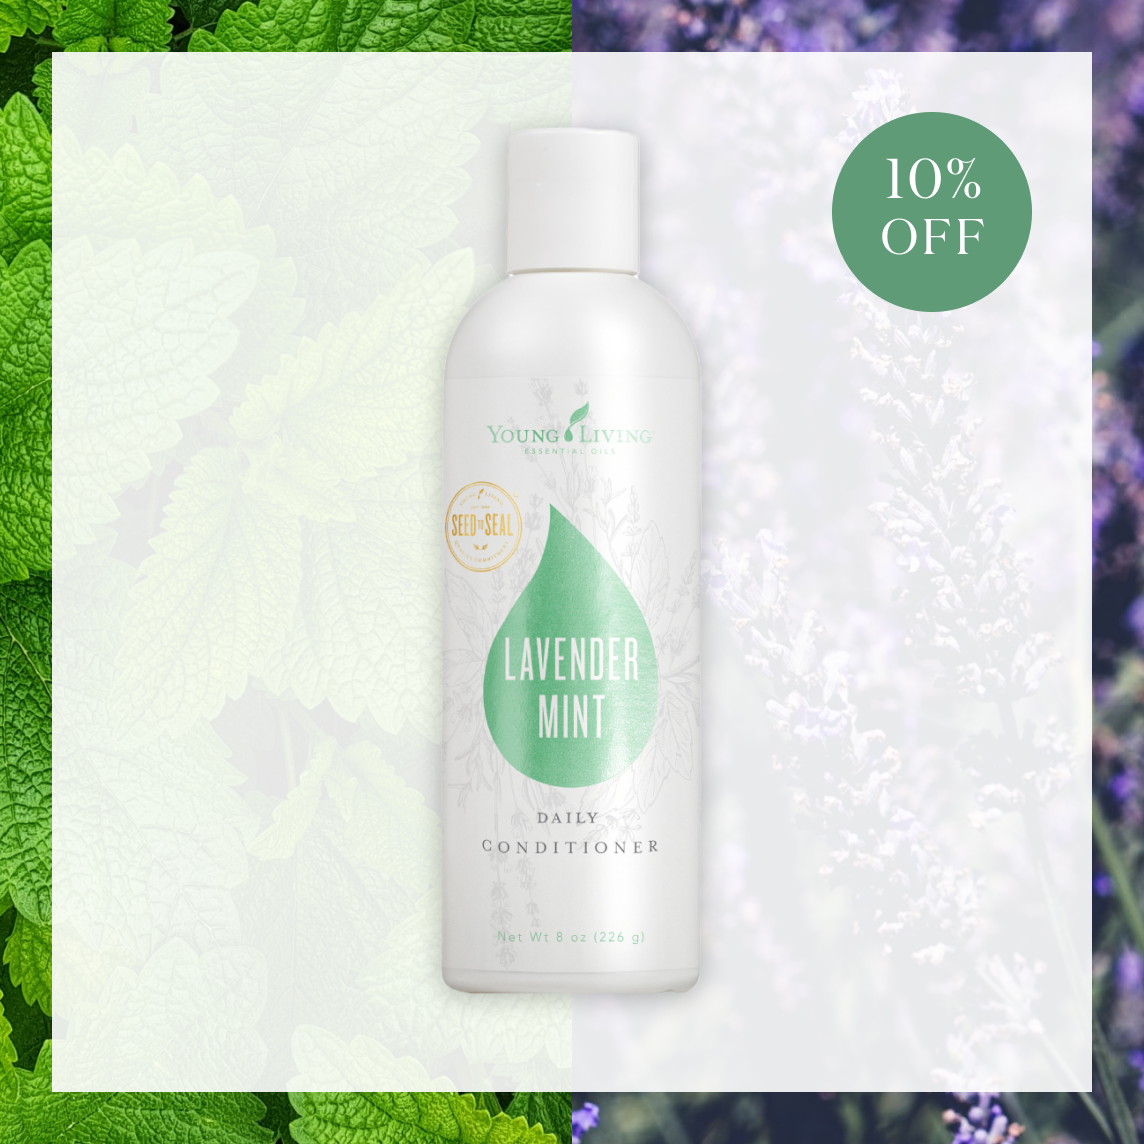 Discounted Lavender Mint Conditioner